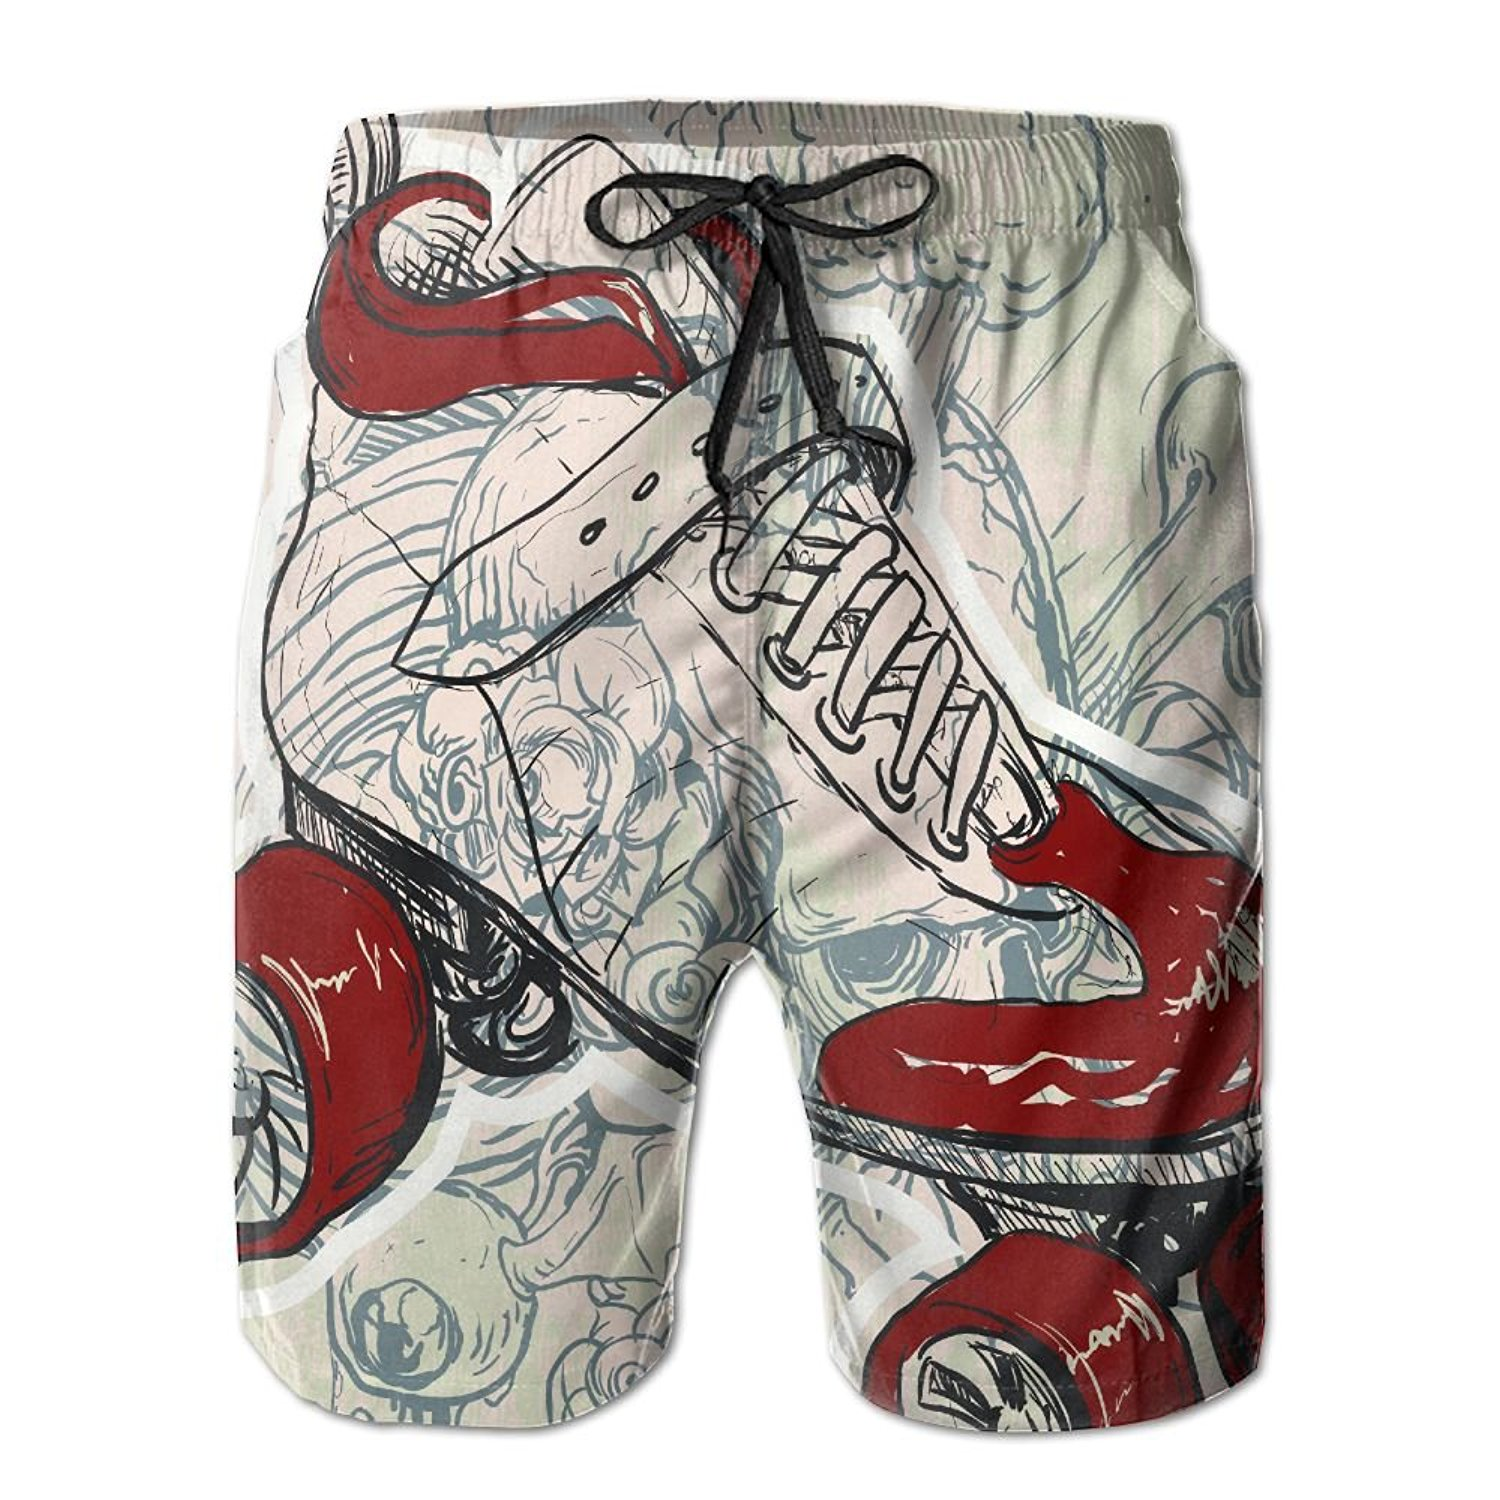 4a53b0144d Get Quotations · Men's Retro Roller Skate Beach Shorts Swimming Trunks  Cargo Shorts